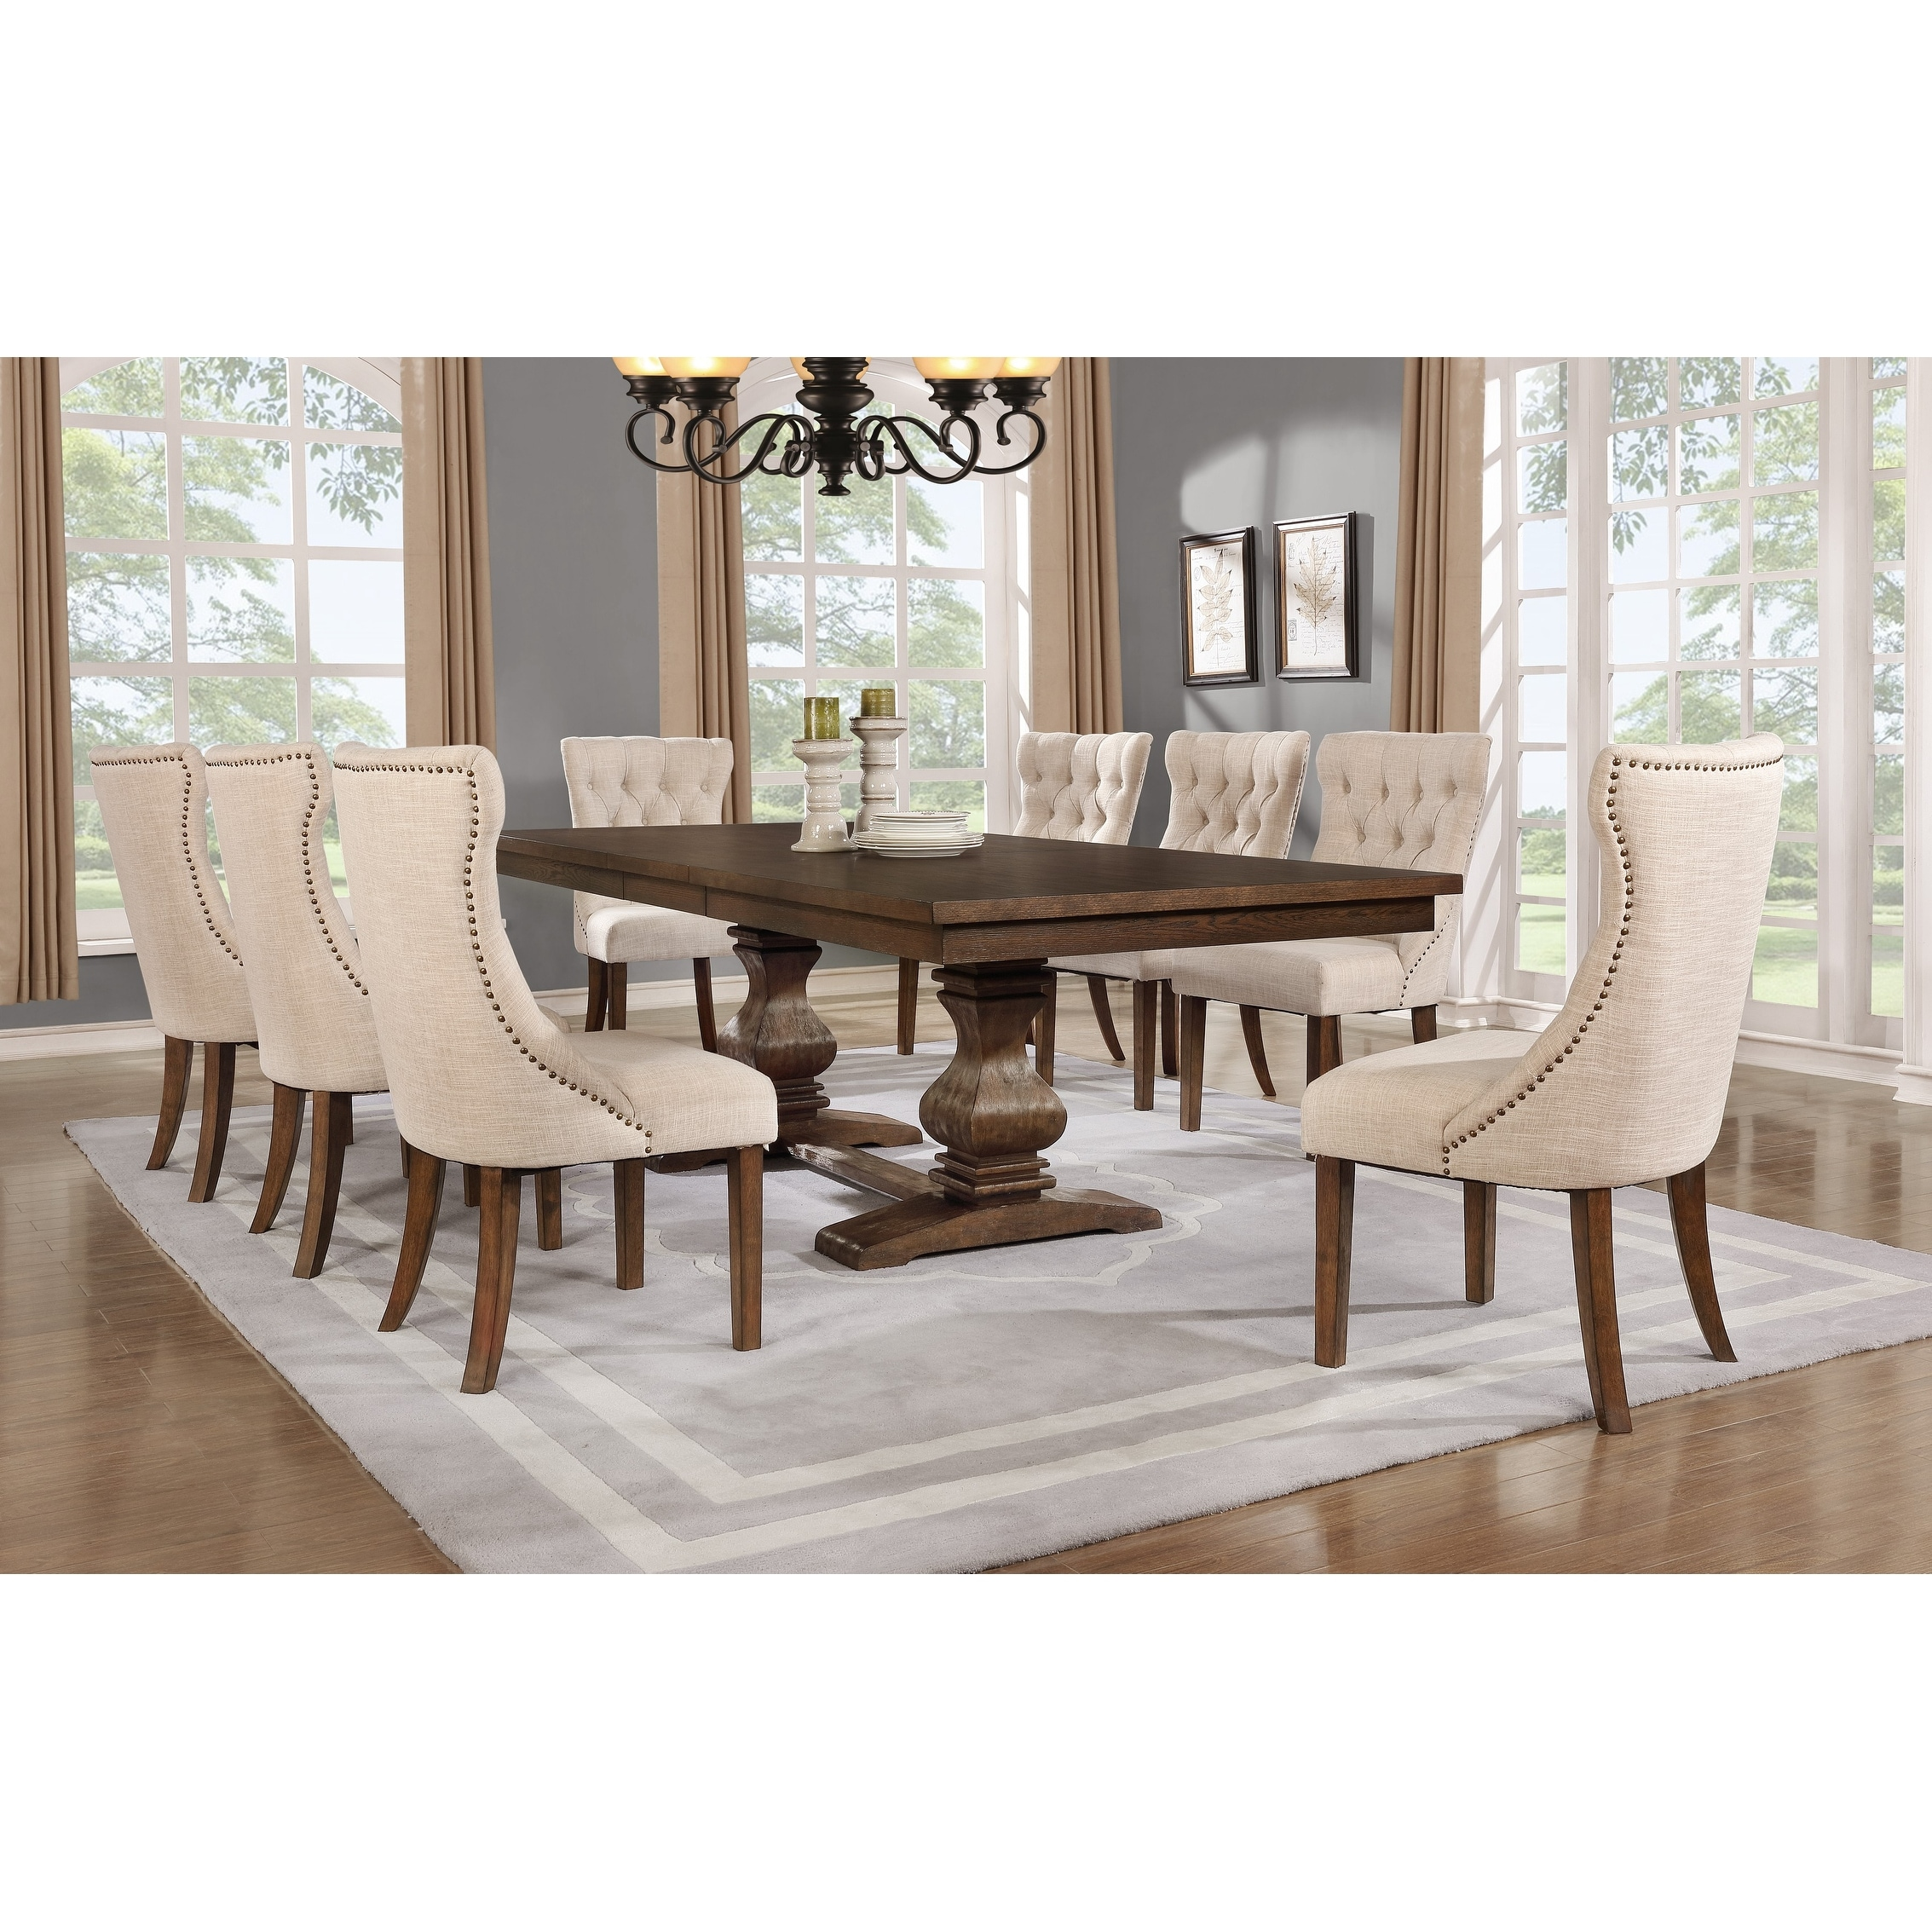 Shop Best Quality Furniture 9 Piece Walnut Extension Dining Table Set Overstock 24259703